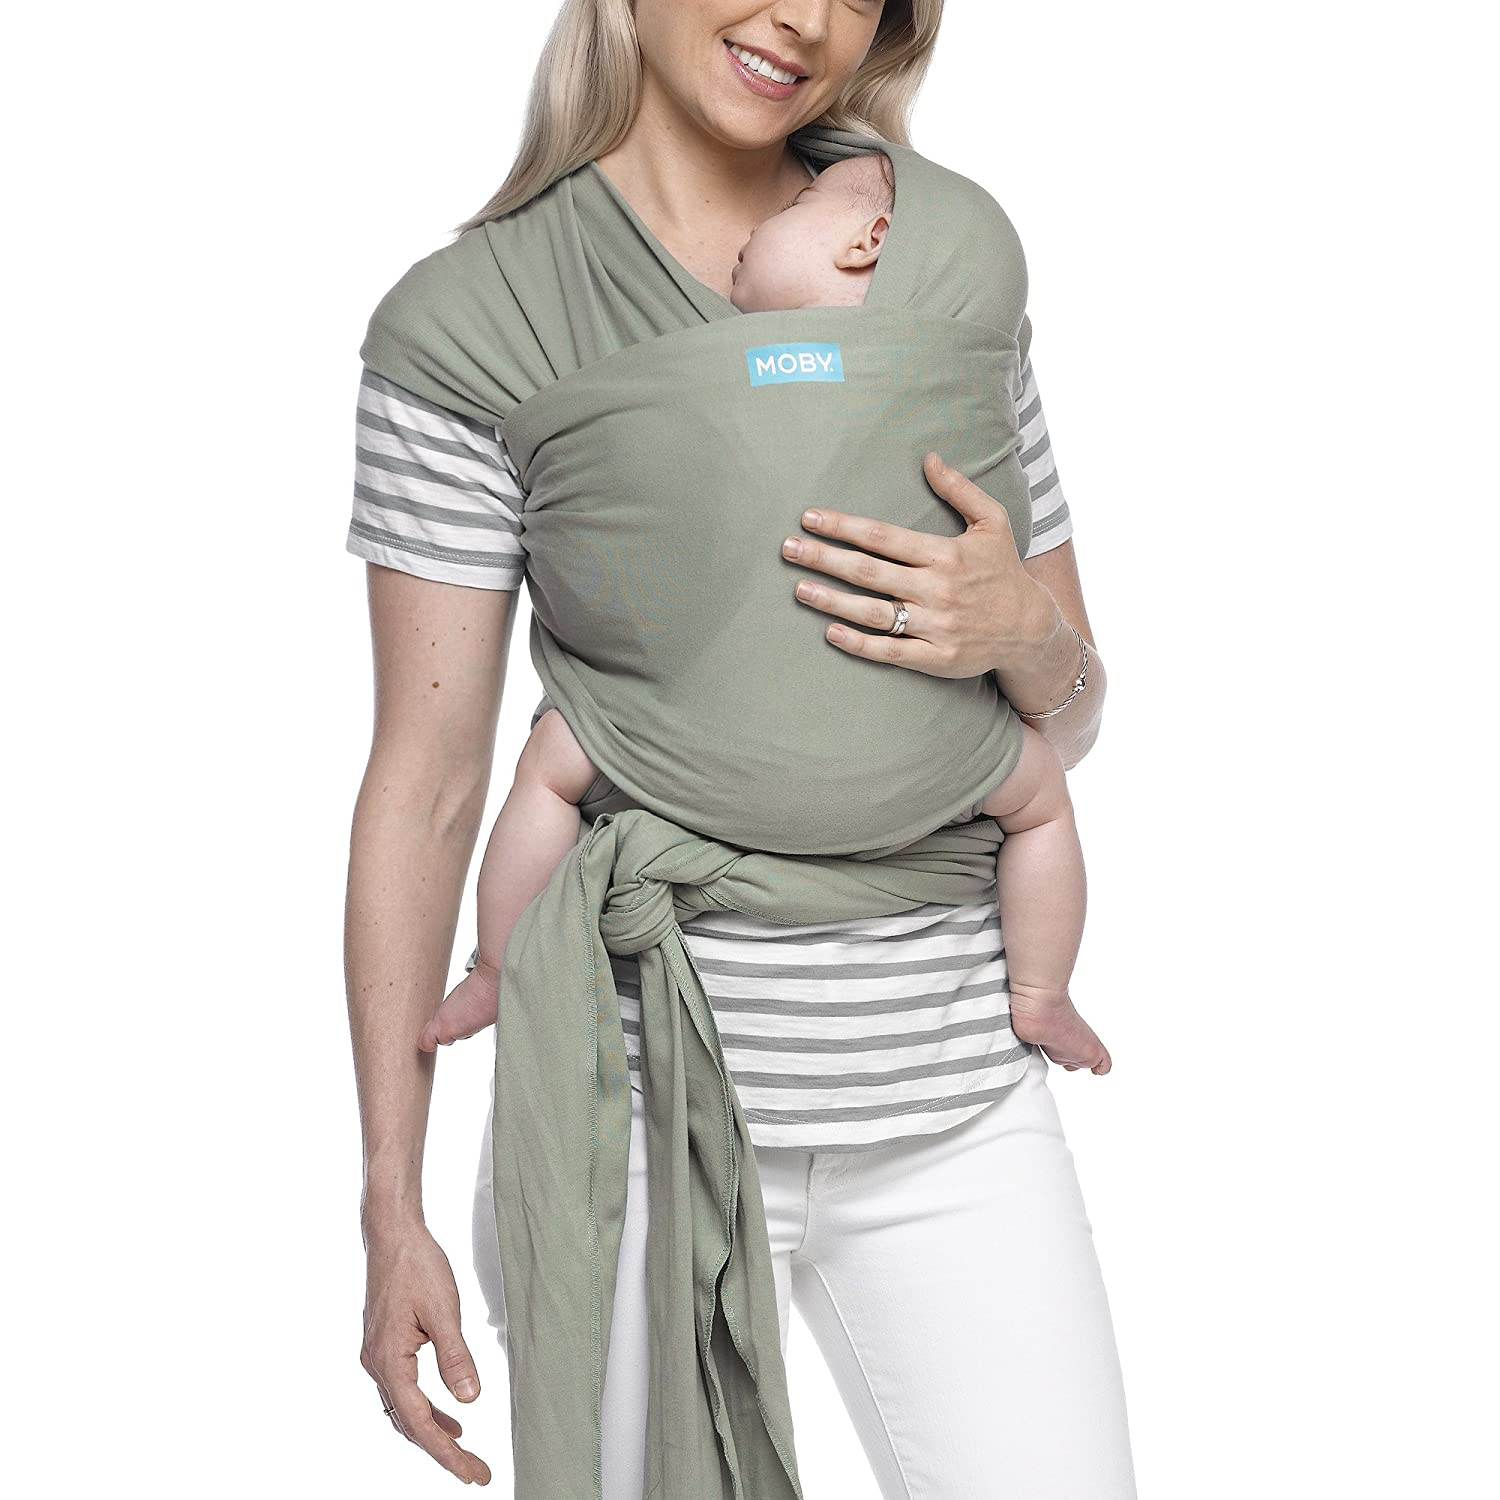 Moby Classic Baby Wrap for Parents On The Go   Ideal for Baby Wearing & Breastfeeding   Pear   Compatible for Newborns, Infants, and Toddlers